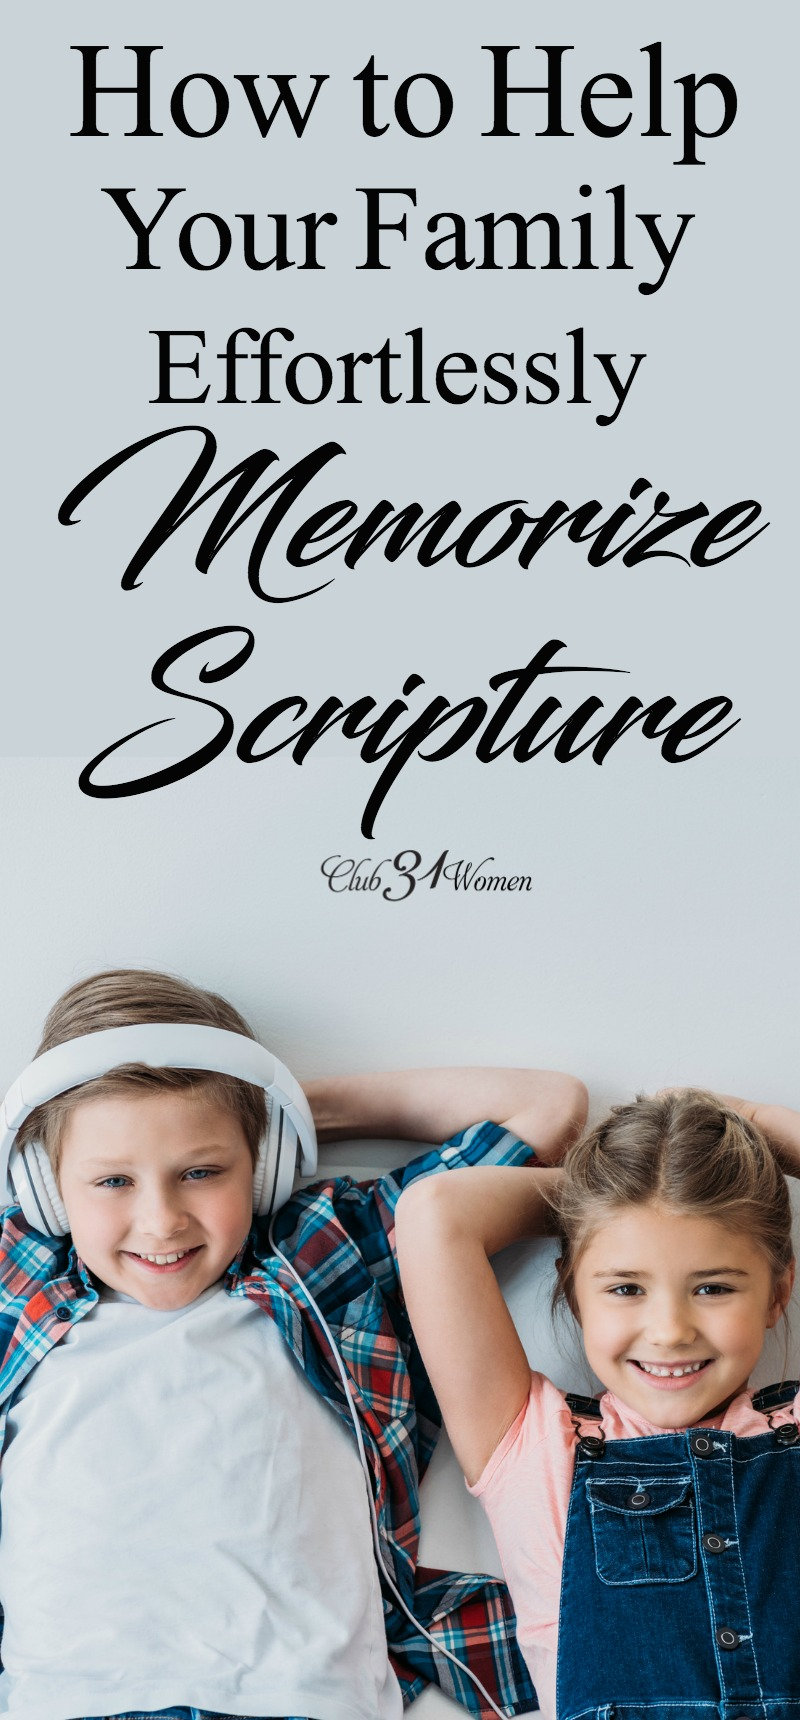 How can you help your family memorize scripture effortlessly? Using music is such a fantastic way to help activate the memory and bring to mind scriptures learned to a tune. via @Club31Women